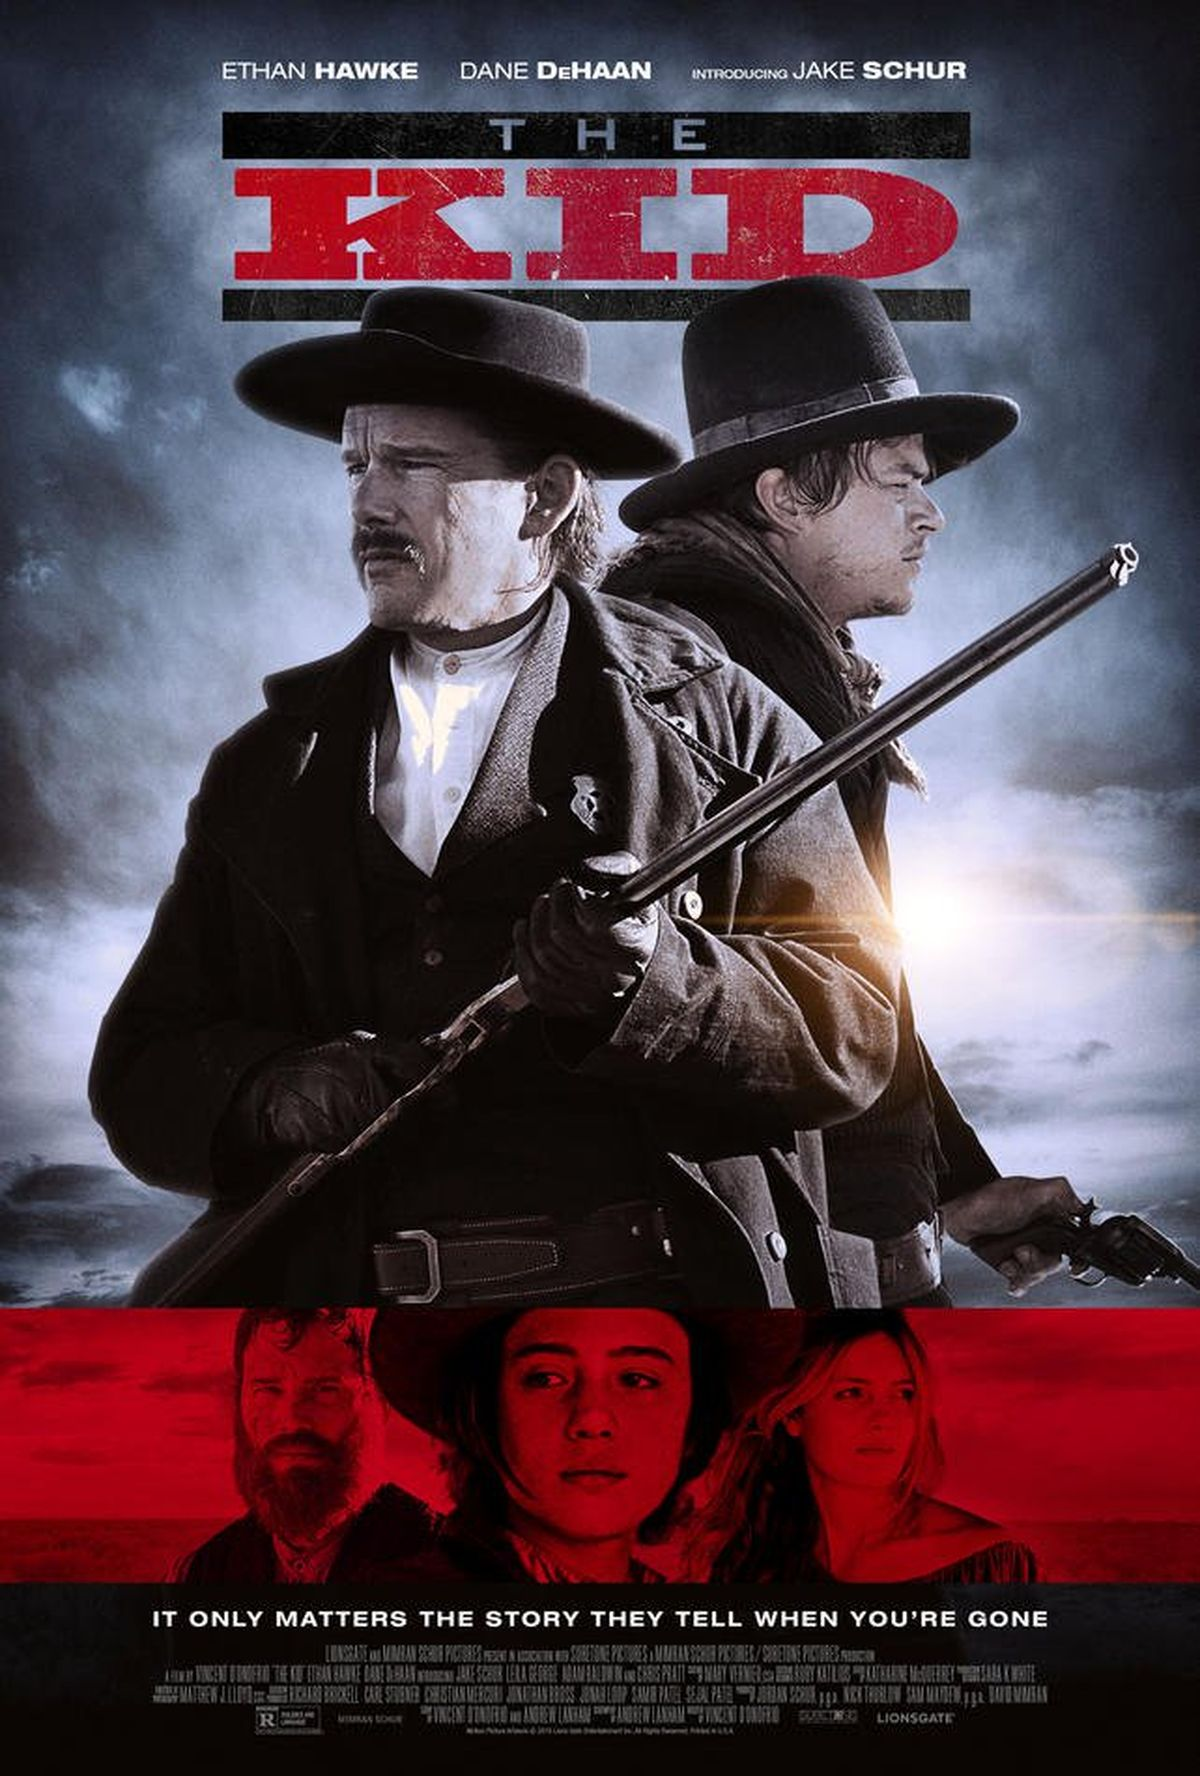 La bande-annonce du film The Kid nous montre la version de Billy the Kid avec Vincent D'Onofrio aux manettes. Ethan Hawke et Chris Pratt font partie du casting.